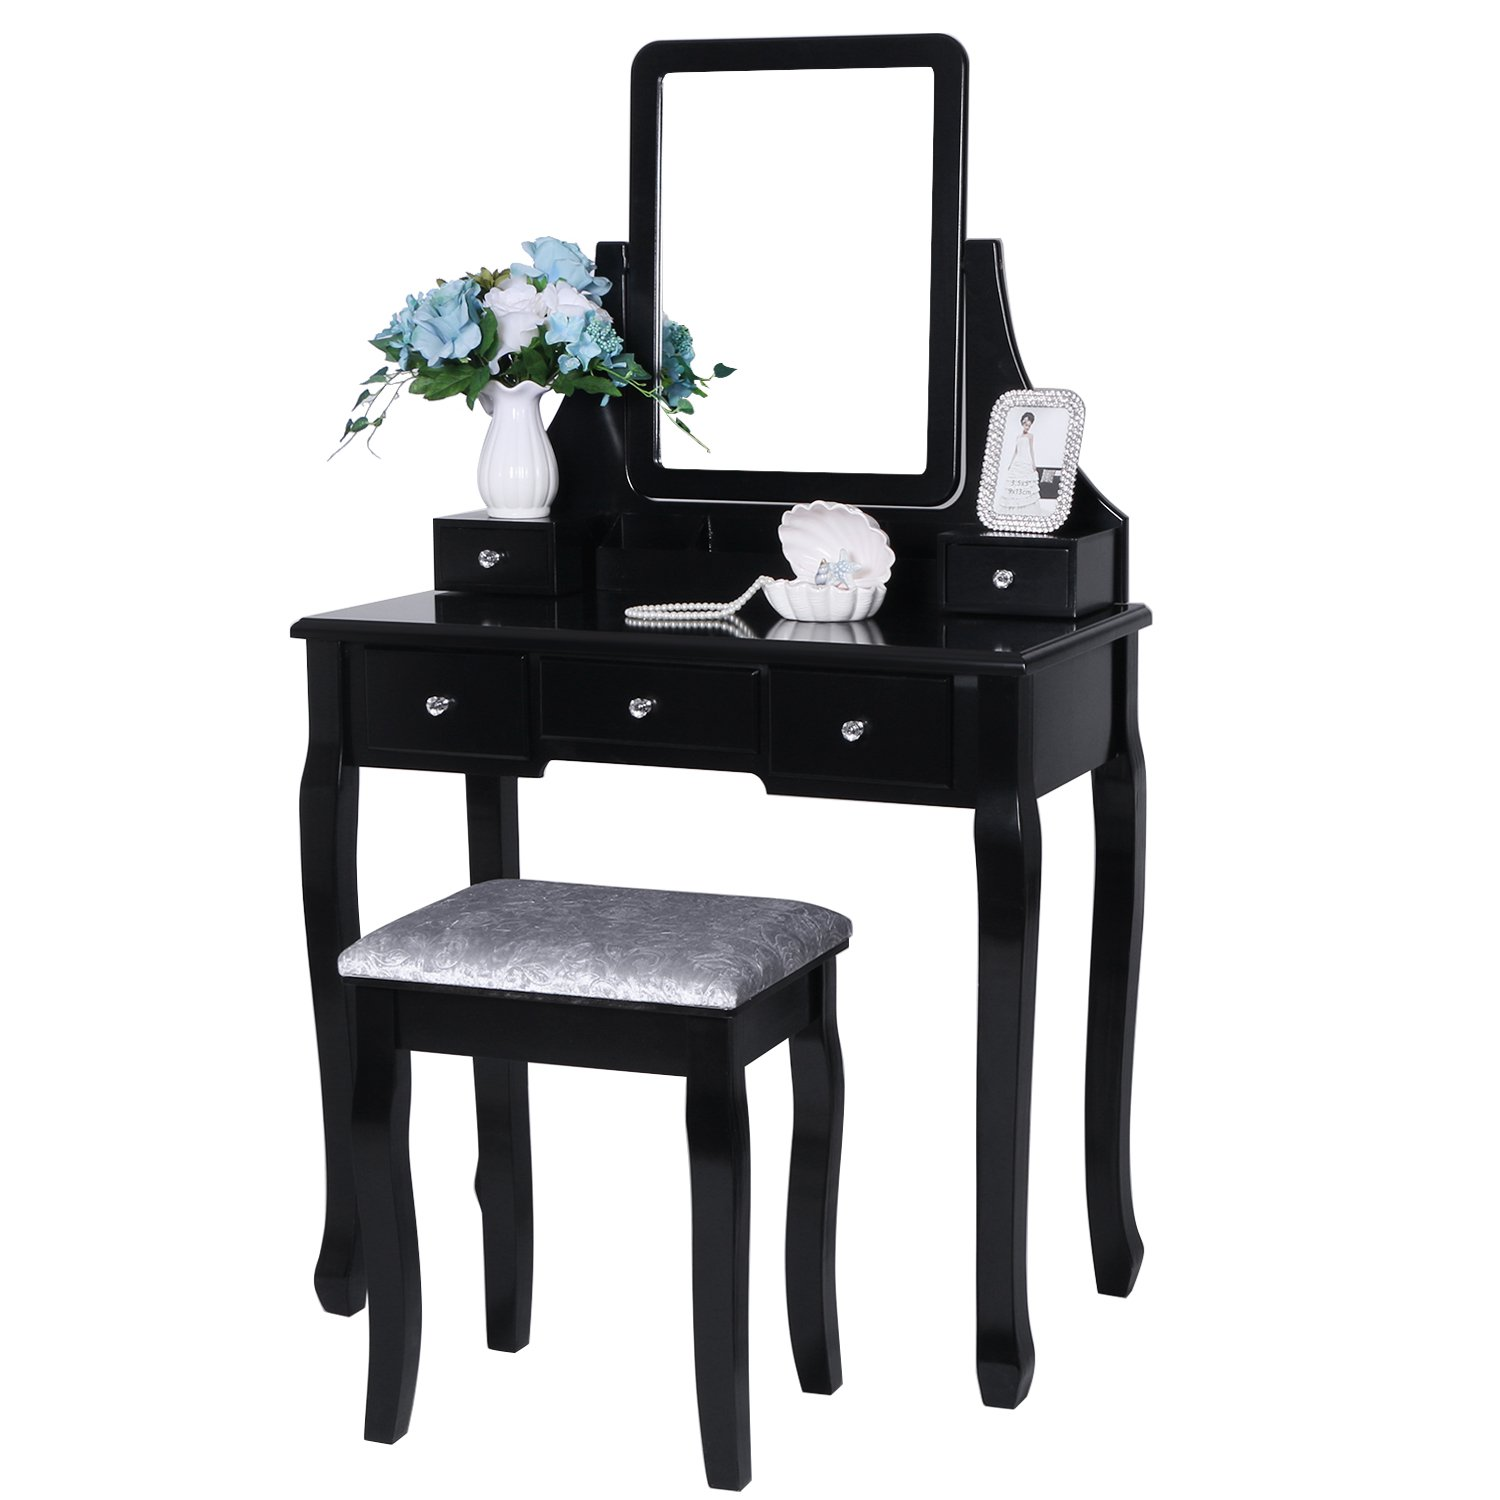 BEWISHOME Vanity Set with Mirror & Cushioned Stool Dressing Table Vanity Makeup Table 5 Drawers 2 Dividers Movable Organizers Black FST01H by BEWISHOME